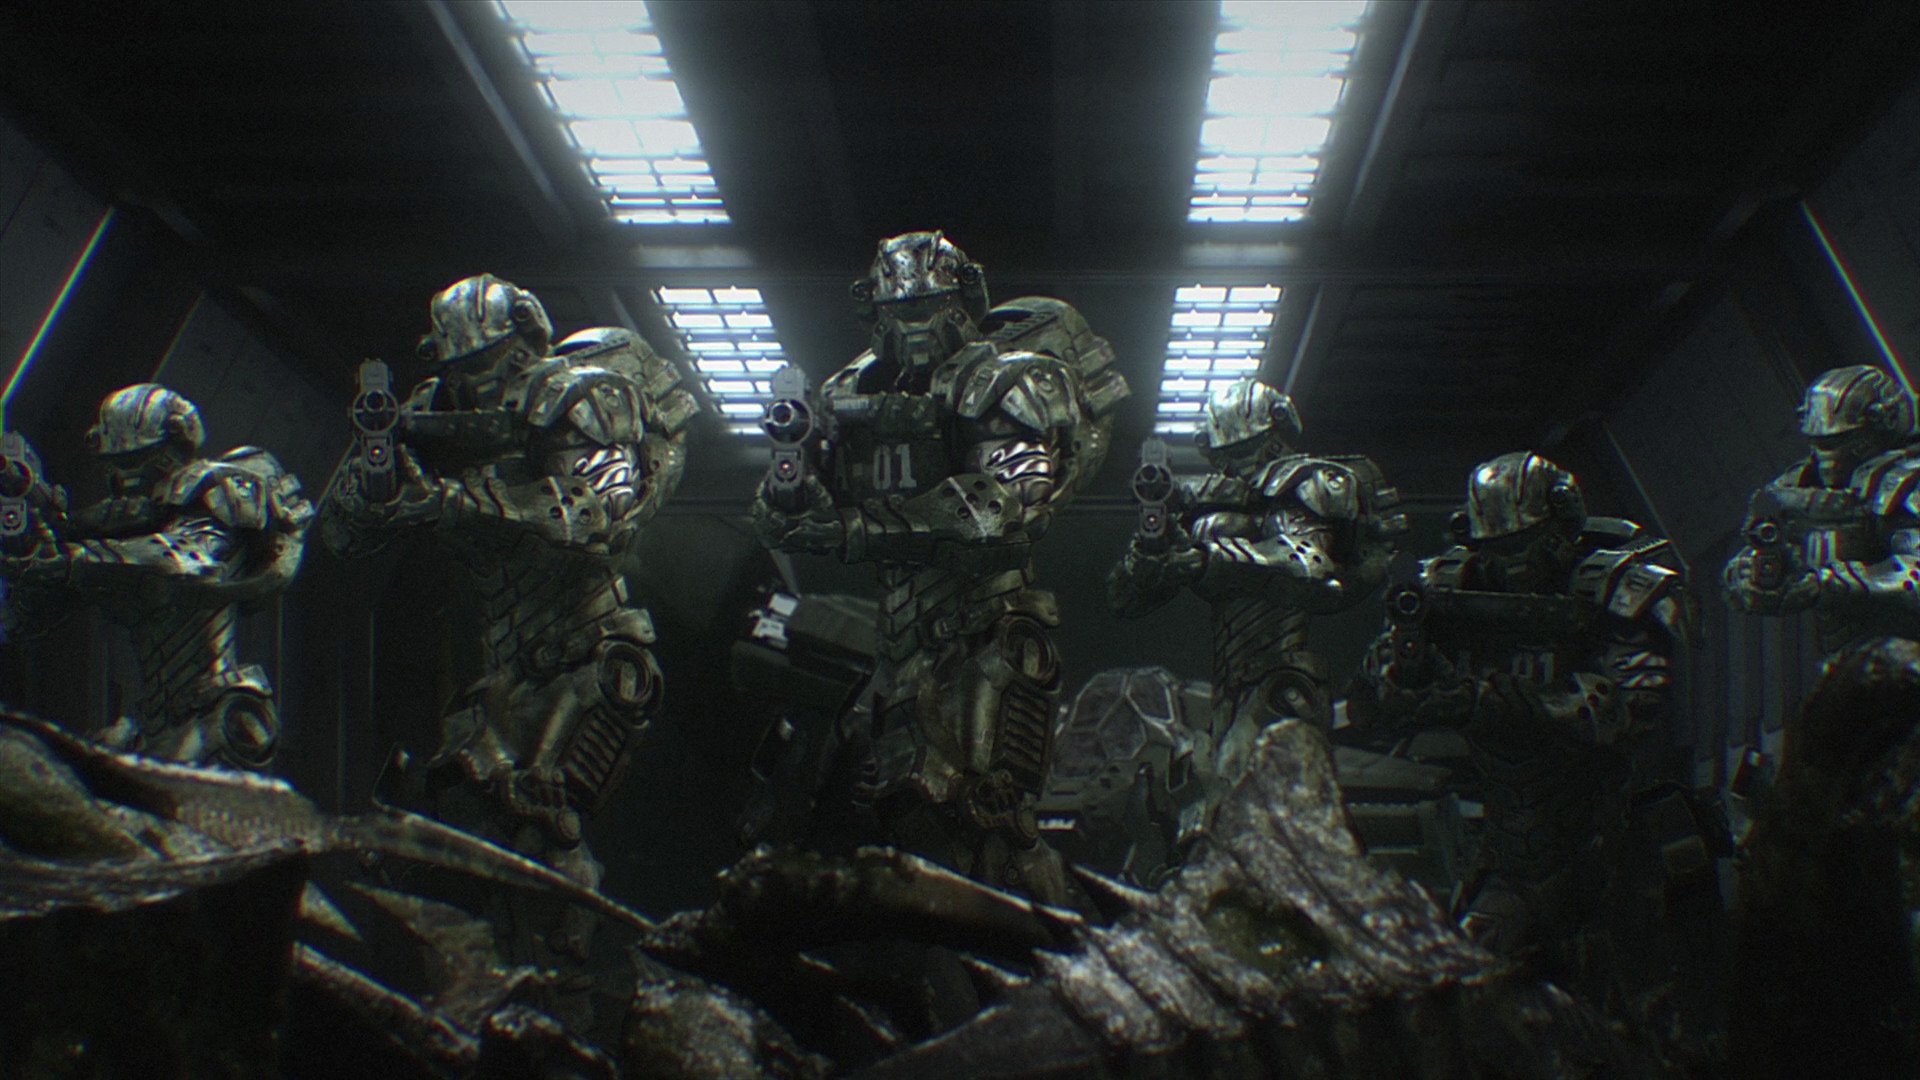 Starship Troopers: Invasion (2012) - Movie Screencaps.com